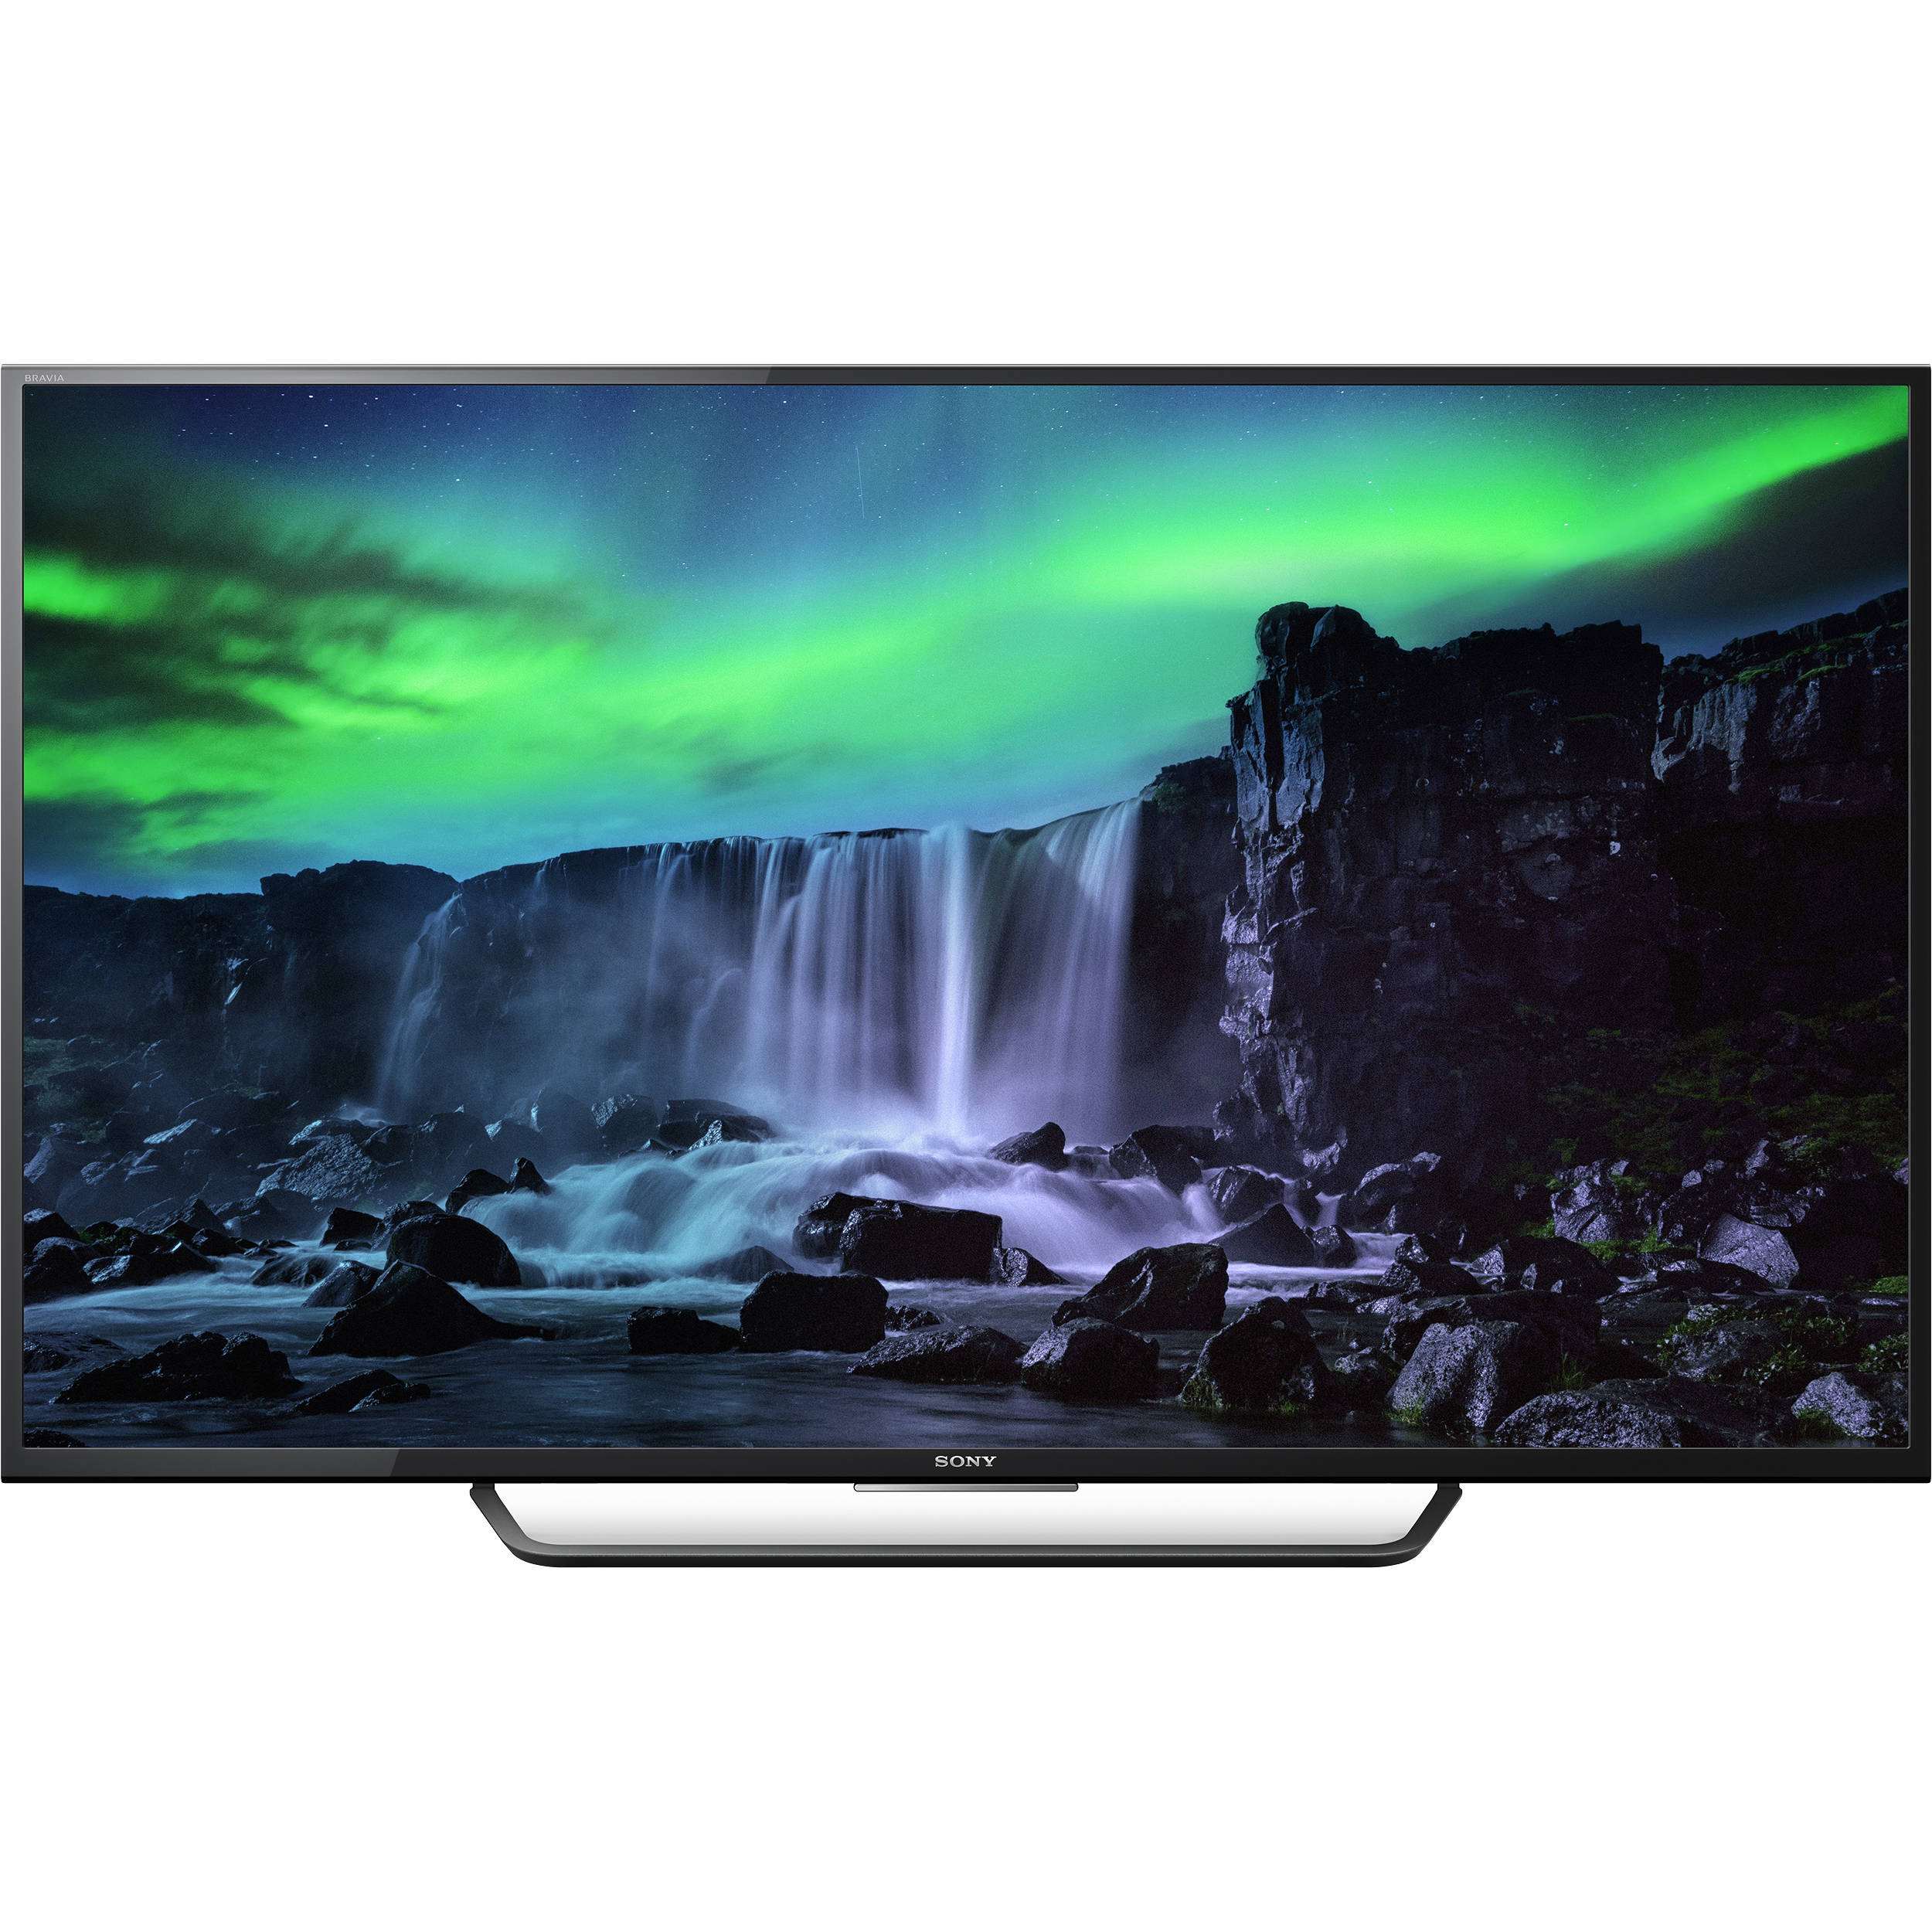 sony xbr 55x810c 55 class 4k smart led tv xbr 55x810c b h. Black Bedroom Furniture Sets. Home Design Ideas